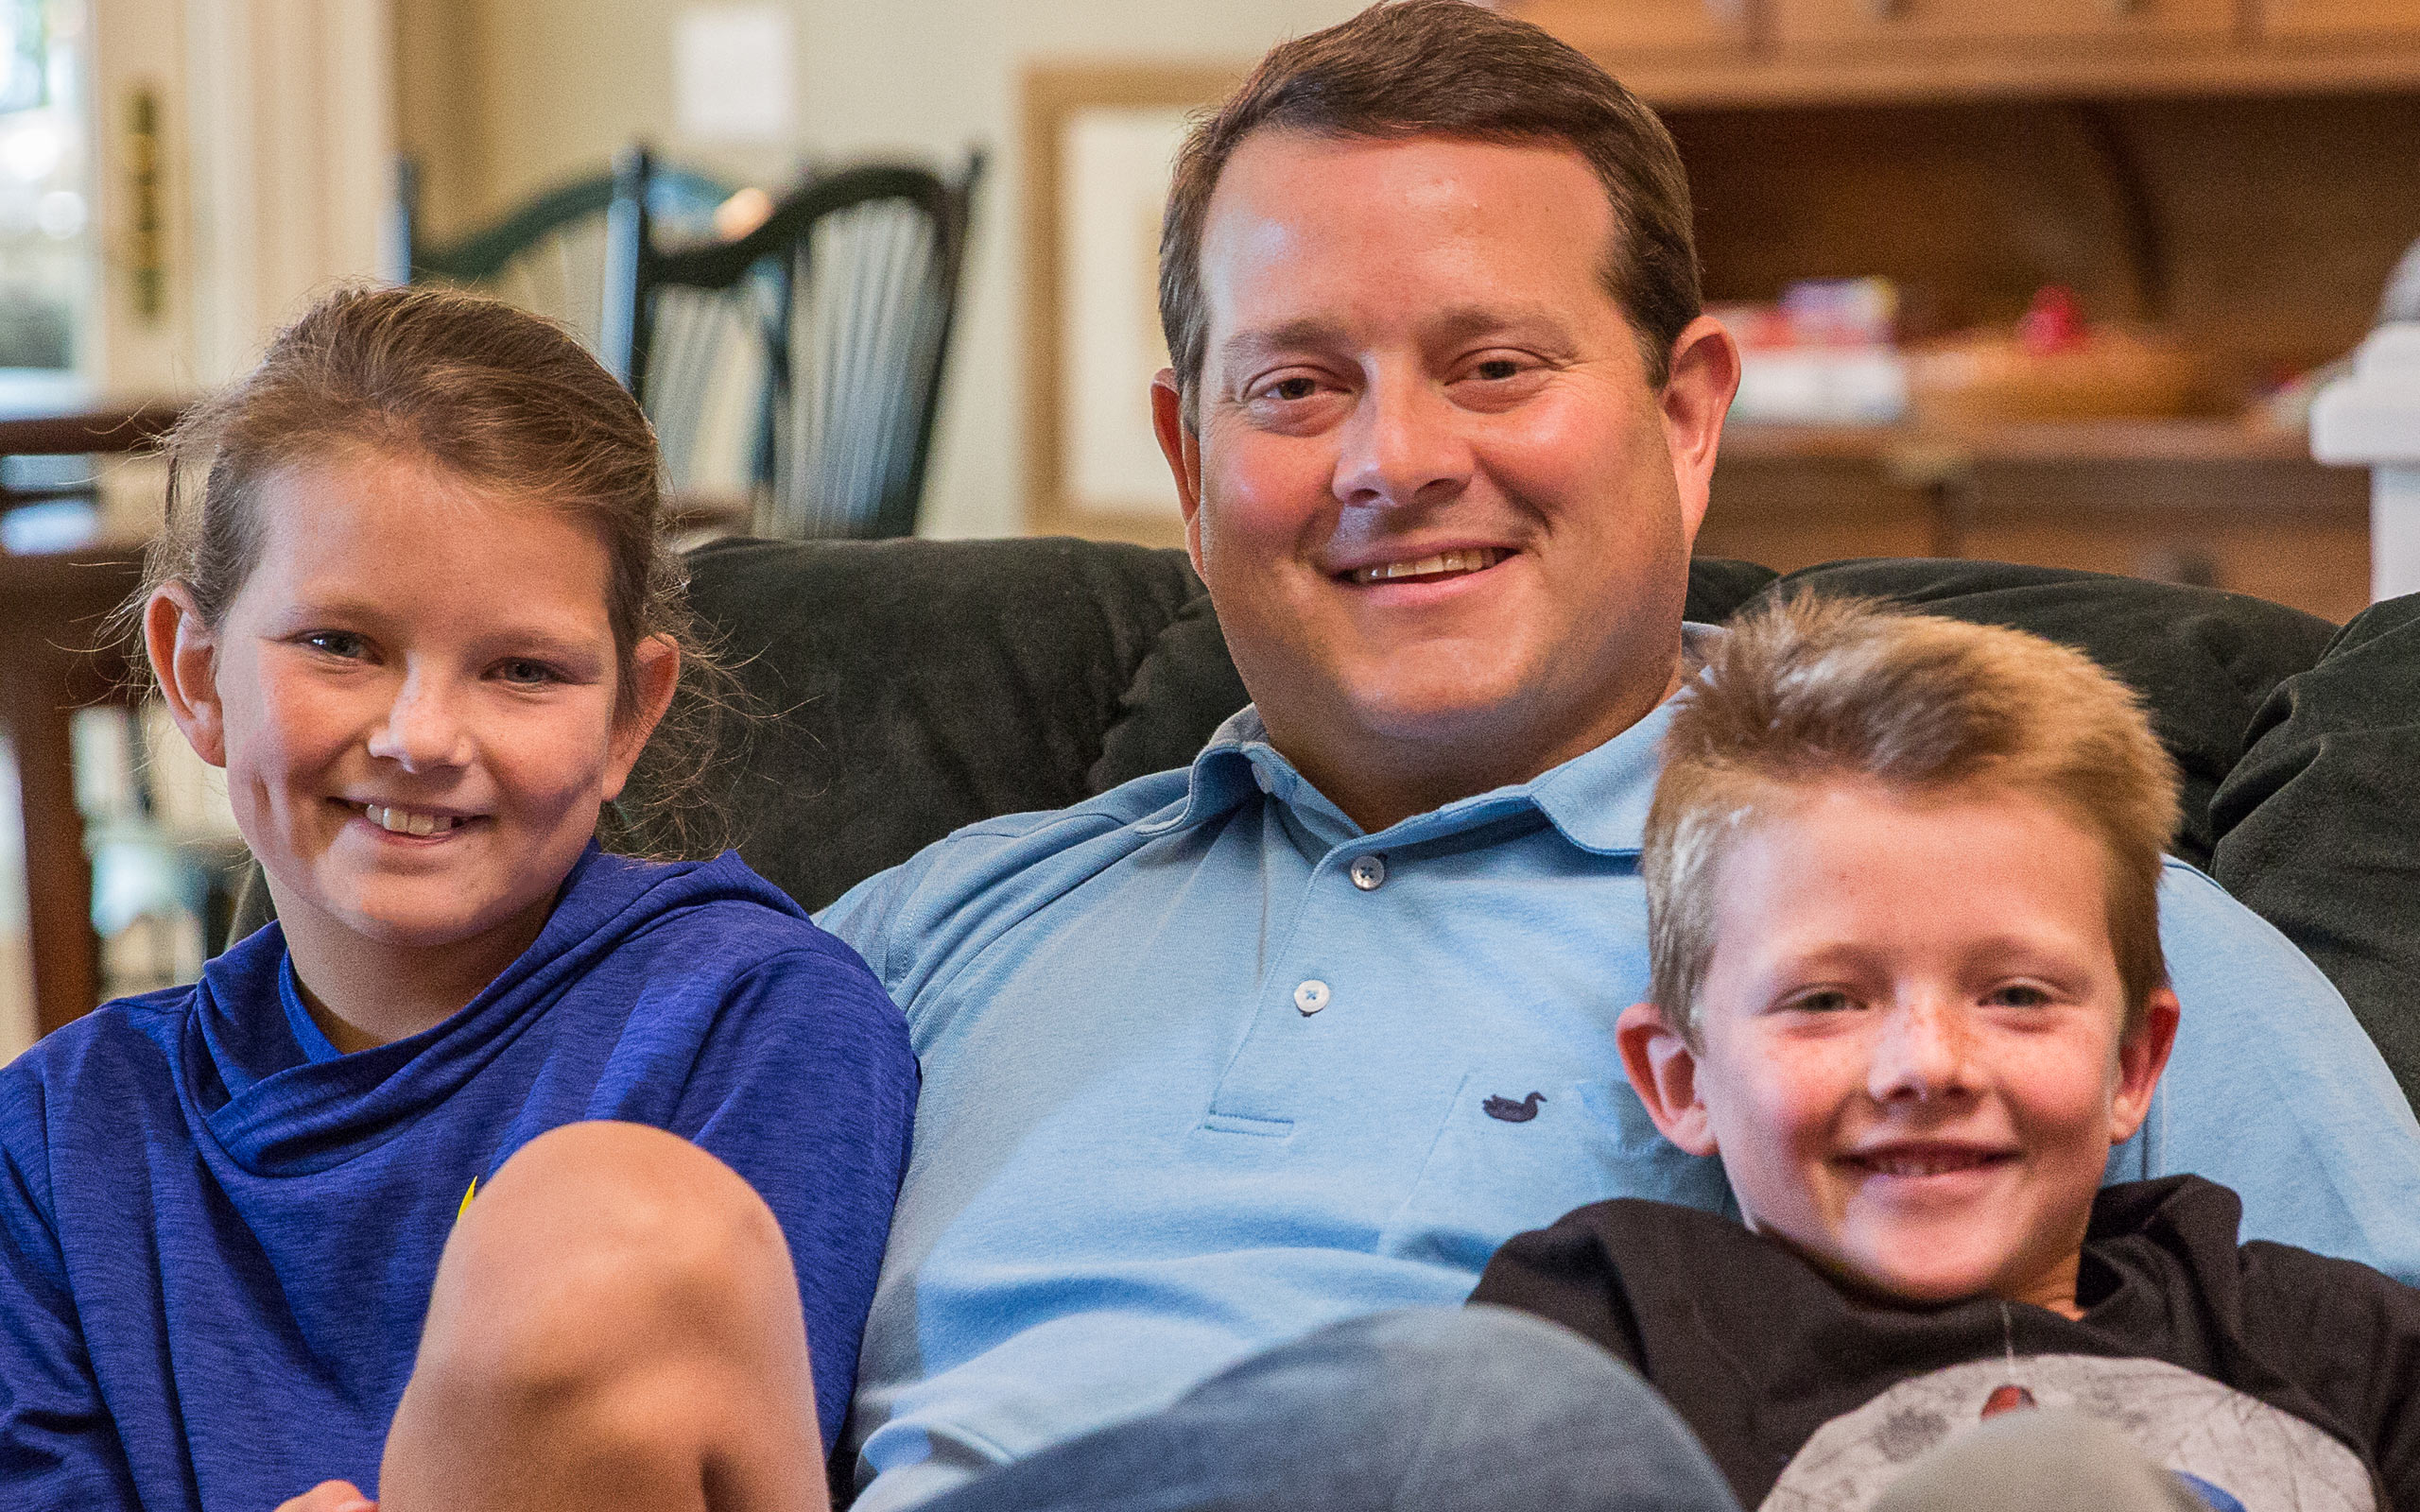 Donnan, diagnosed with aHUS at 39 years old, and his two children